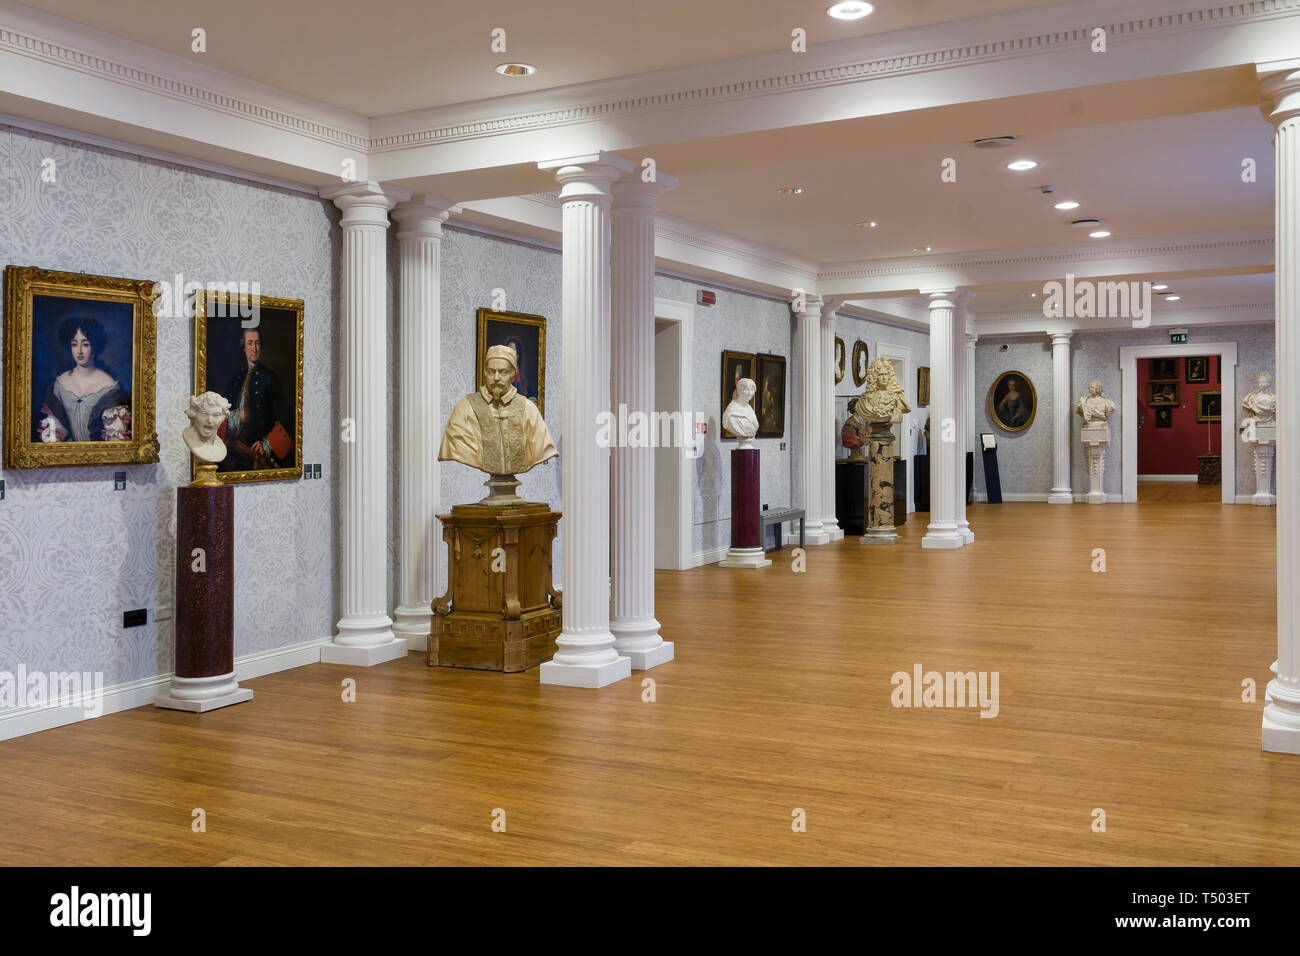 Franco Maria Ricci High Resolution Stock Photography and Images - Alamy